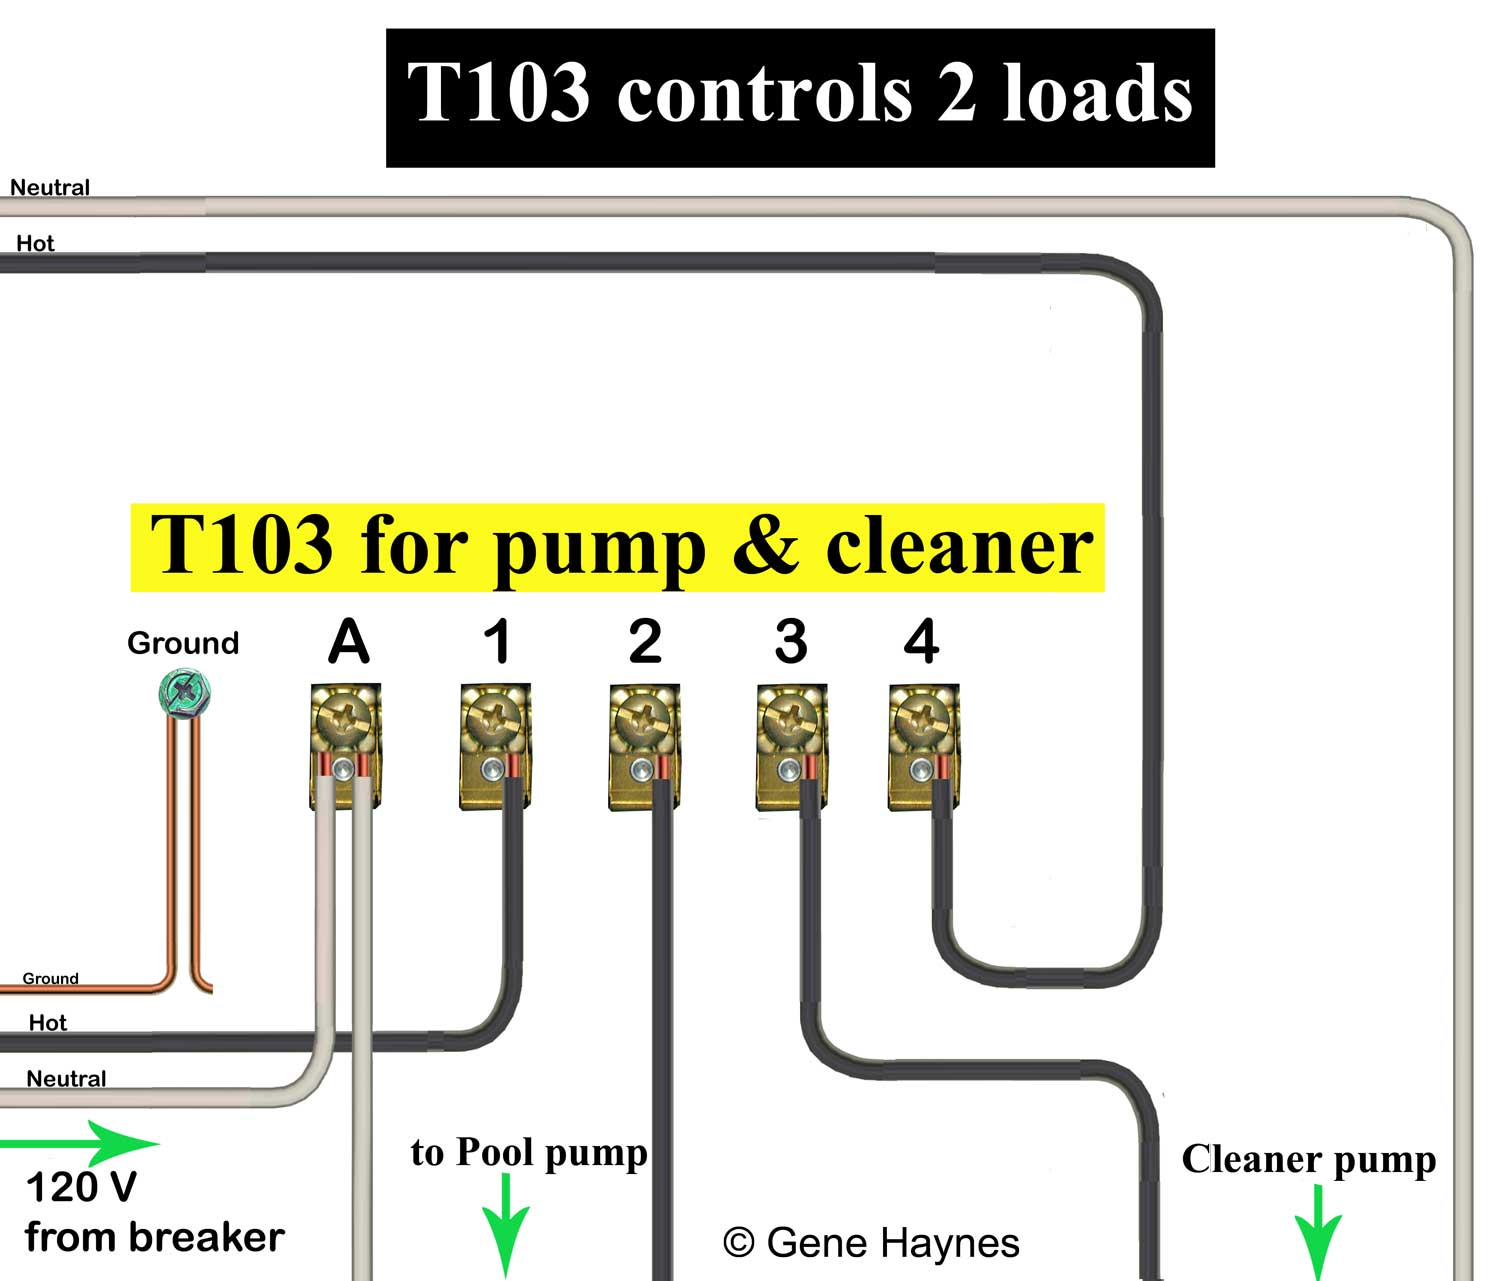 110 volt wiring diagram plant cell to label how wire t103 timer larger image